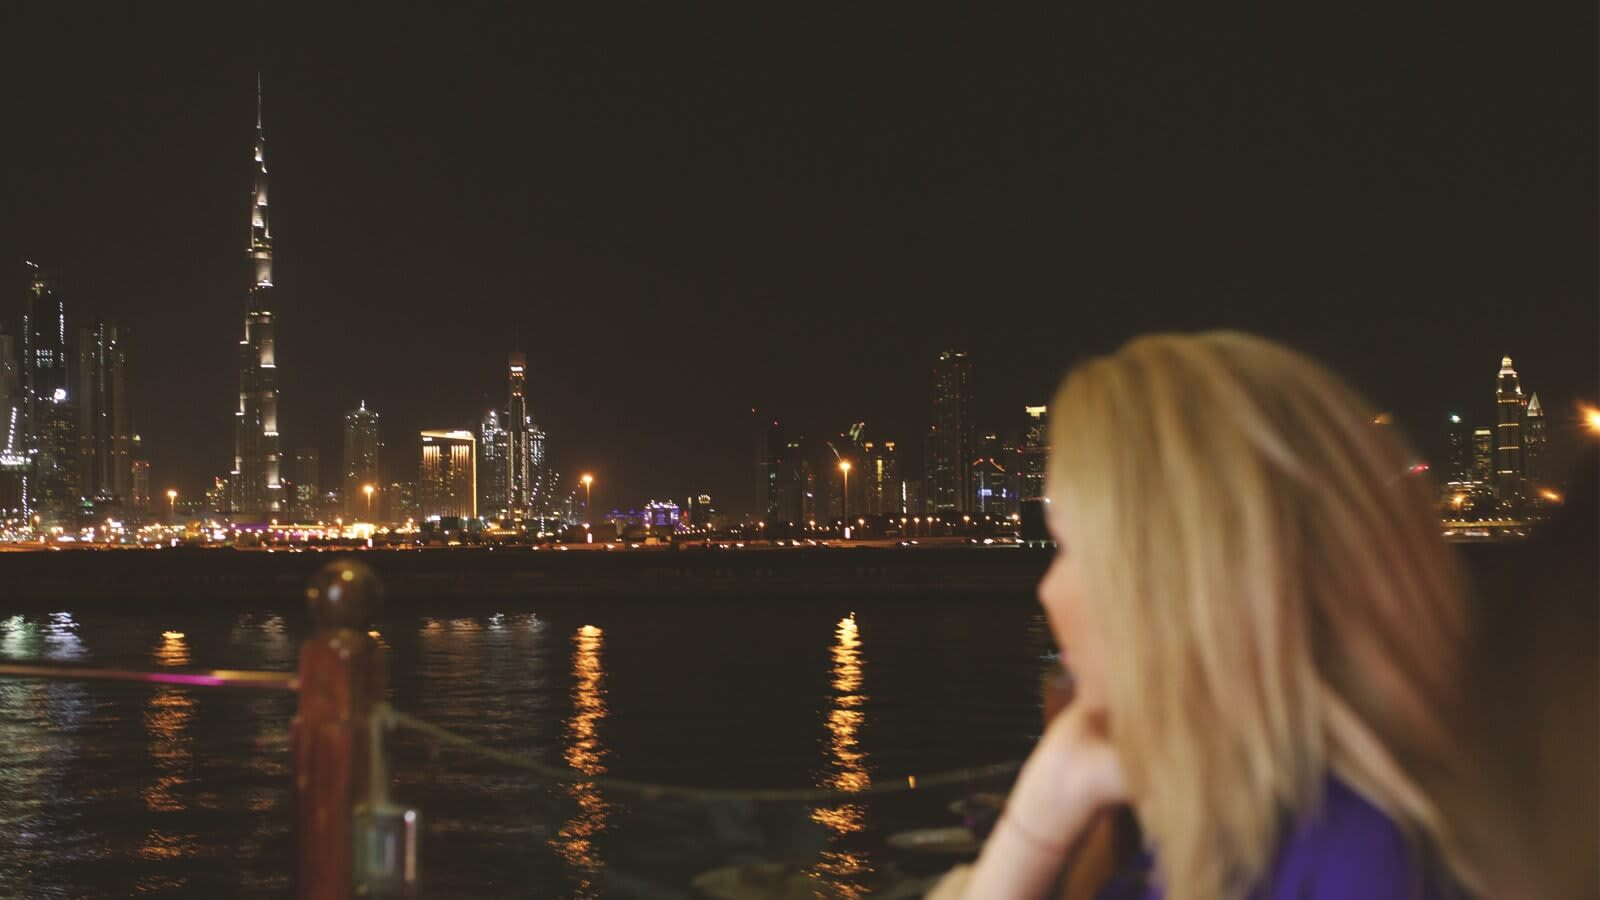 Dubai Water Canal Cruise